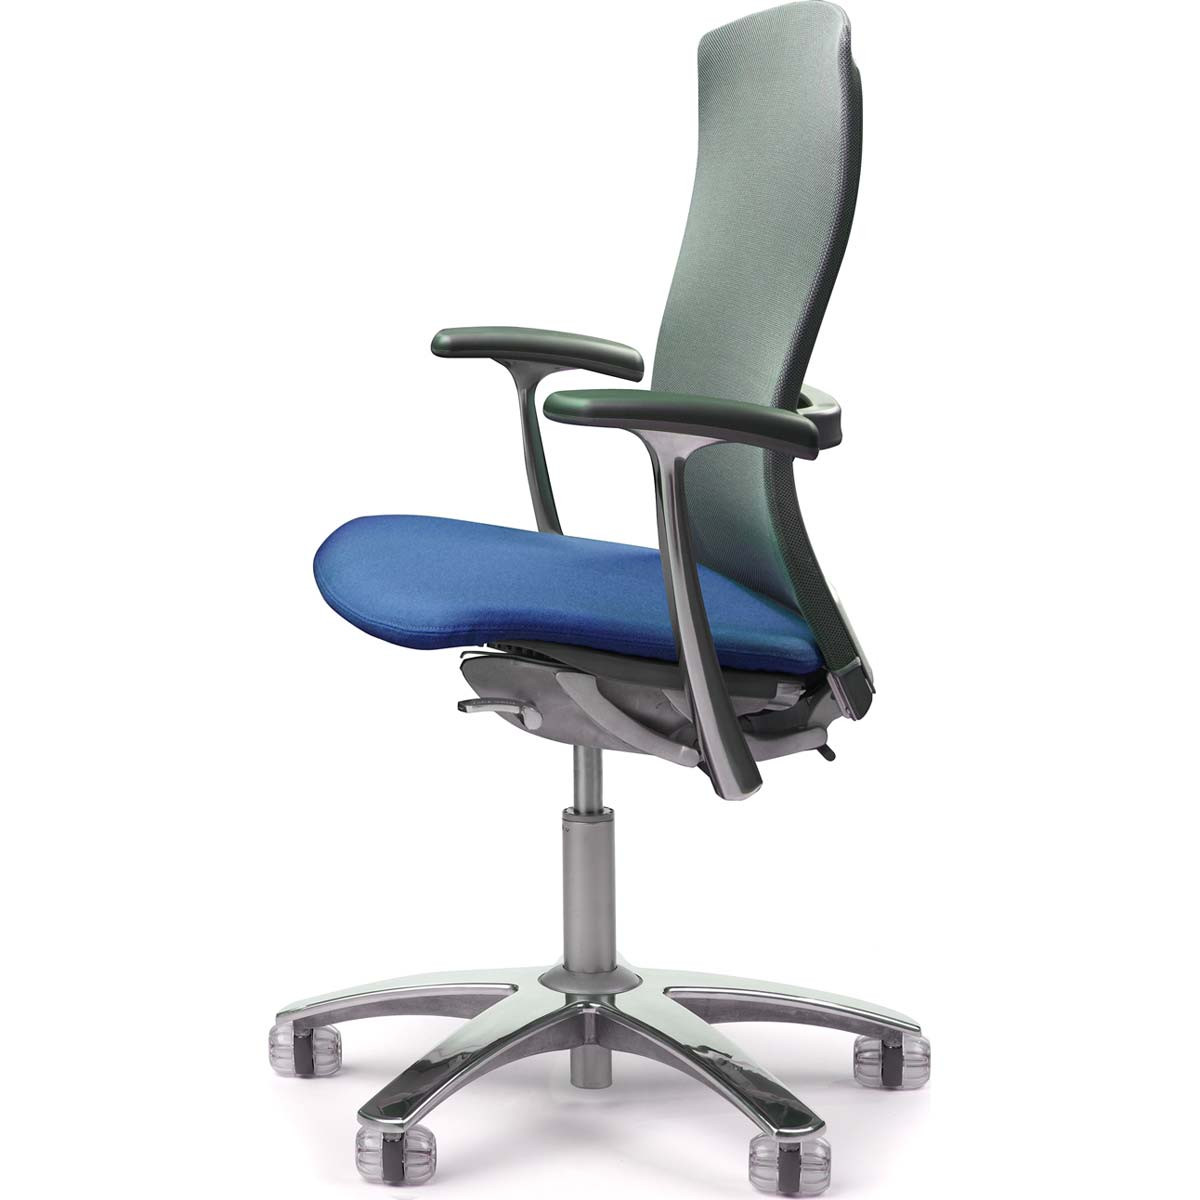 Ordinaire Knoll Life Chair. Loading Zoom